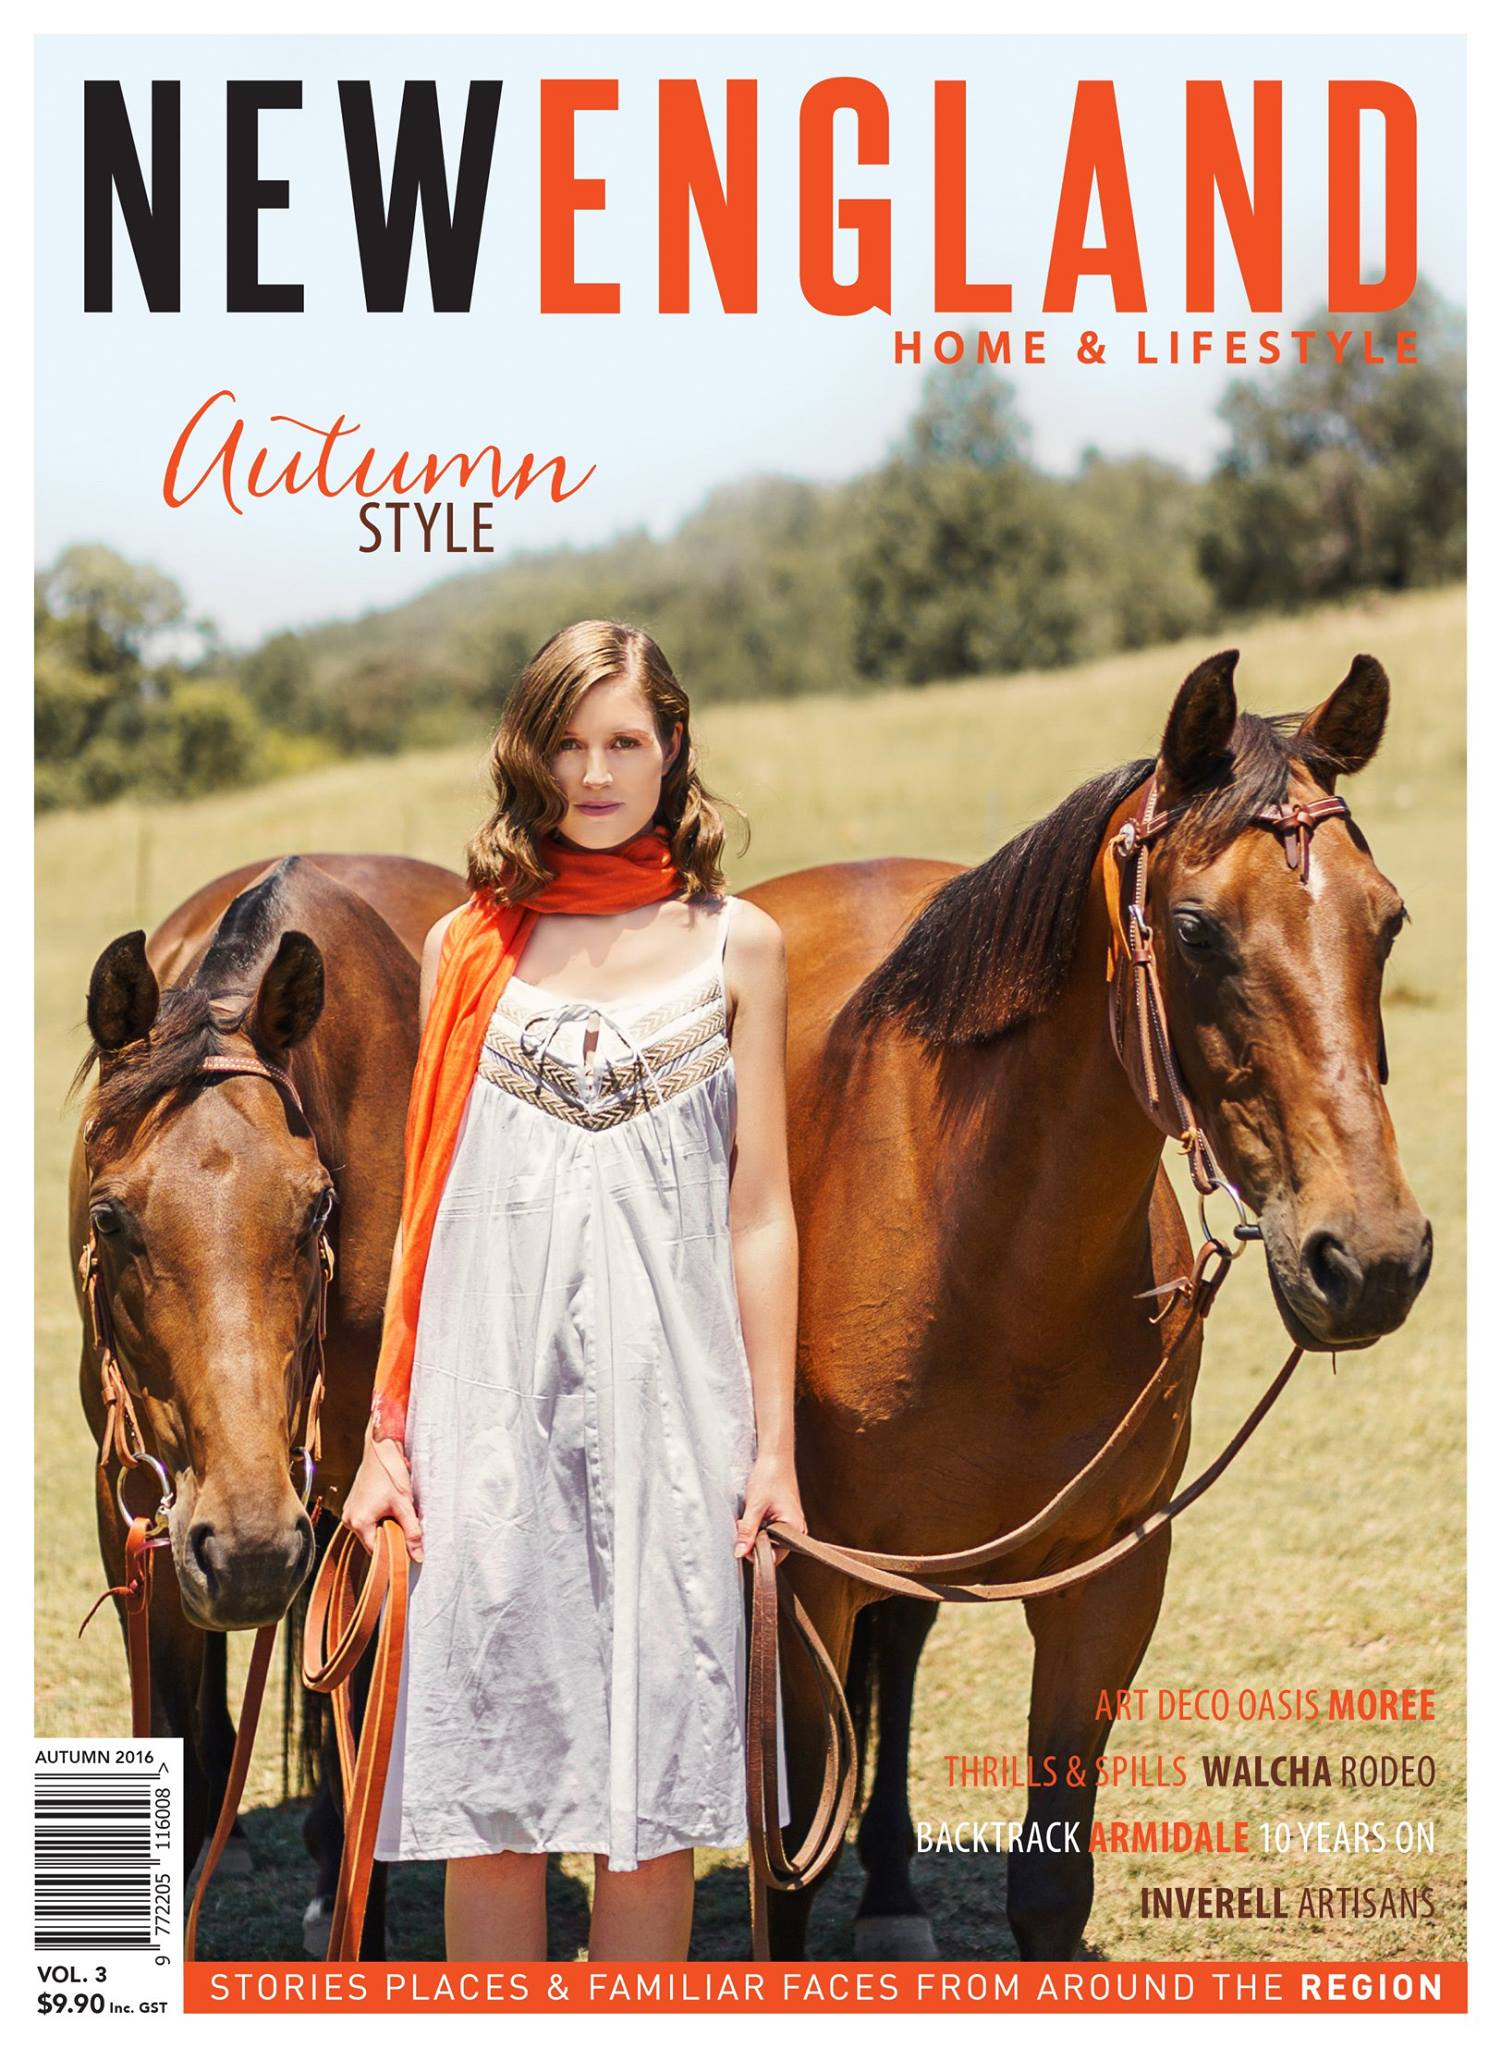 New England Home & Lifestyle Australia